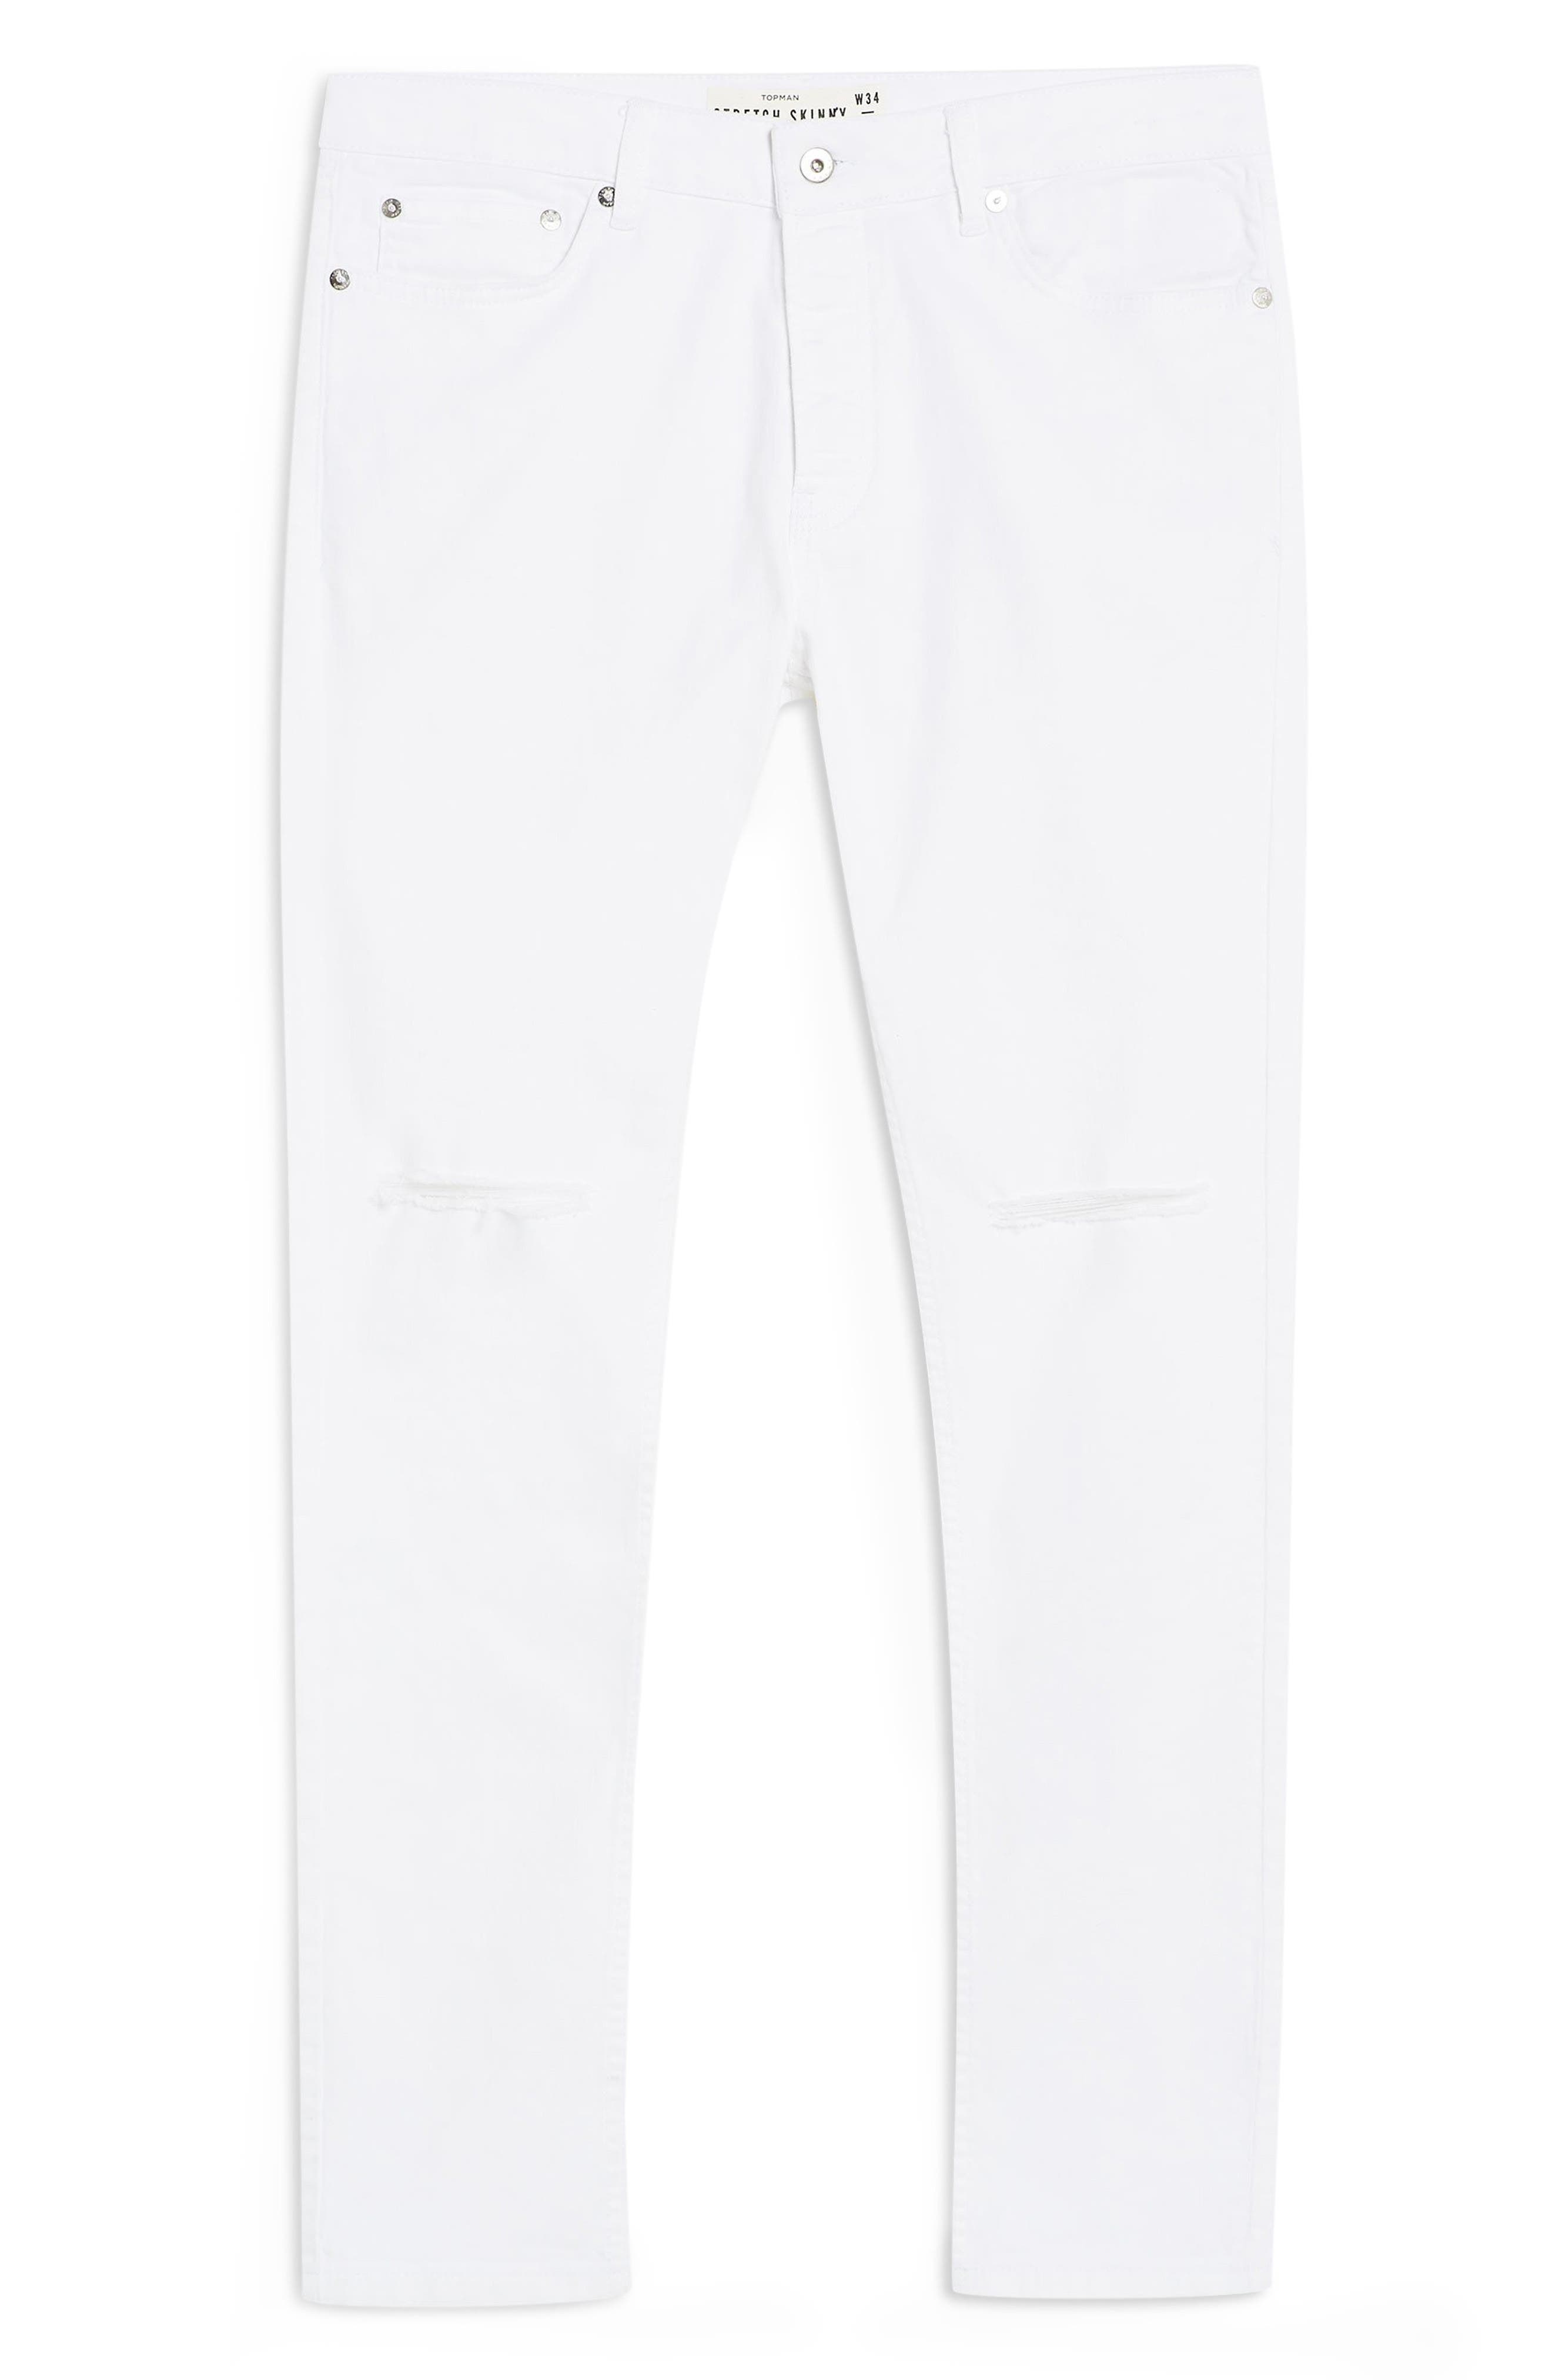 TOPMAN, Ripped Stretch Skinny Fit Jeans, Alternate thumbnail 4, color, WHITE